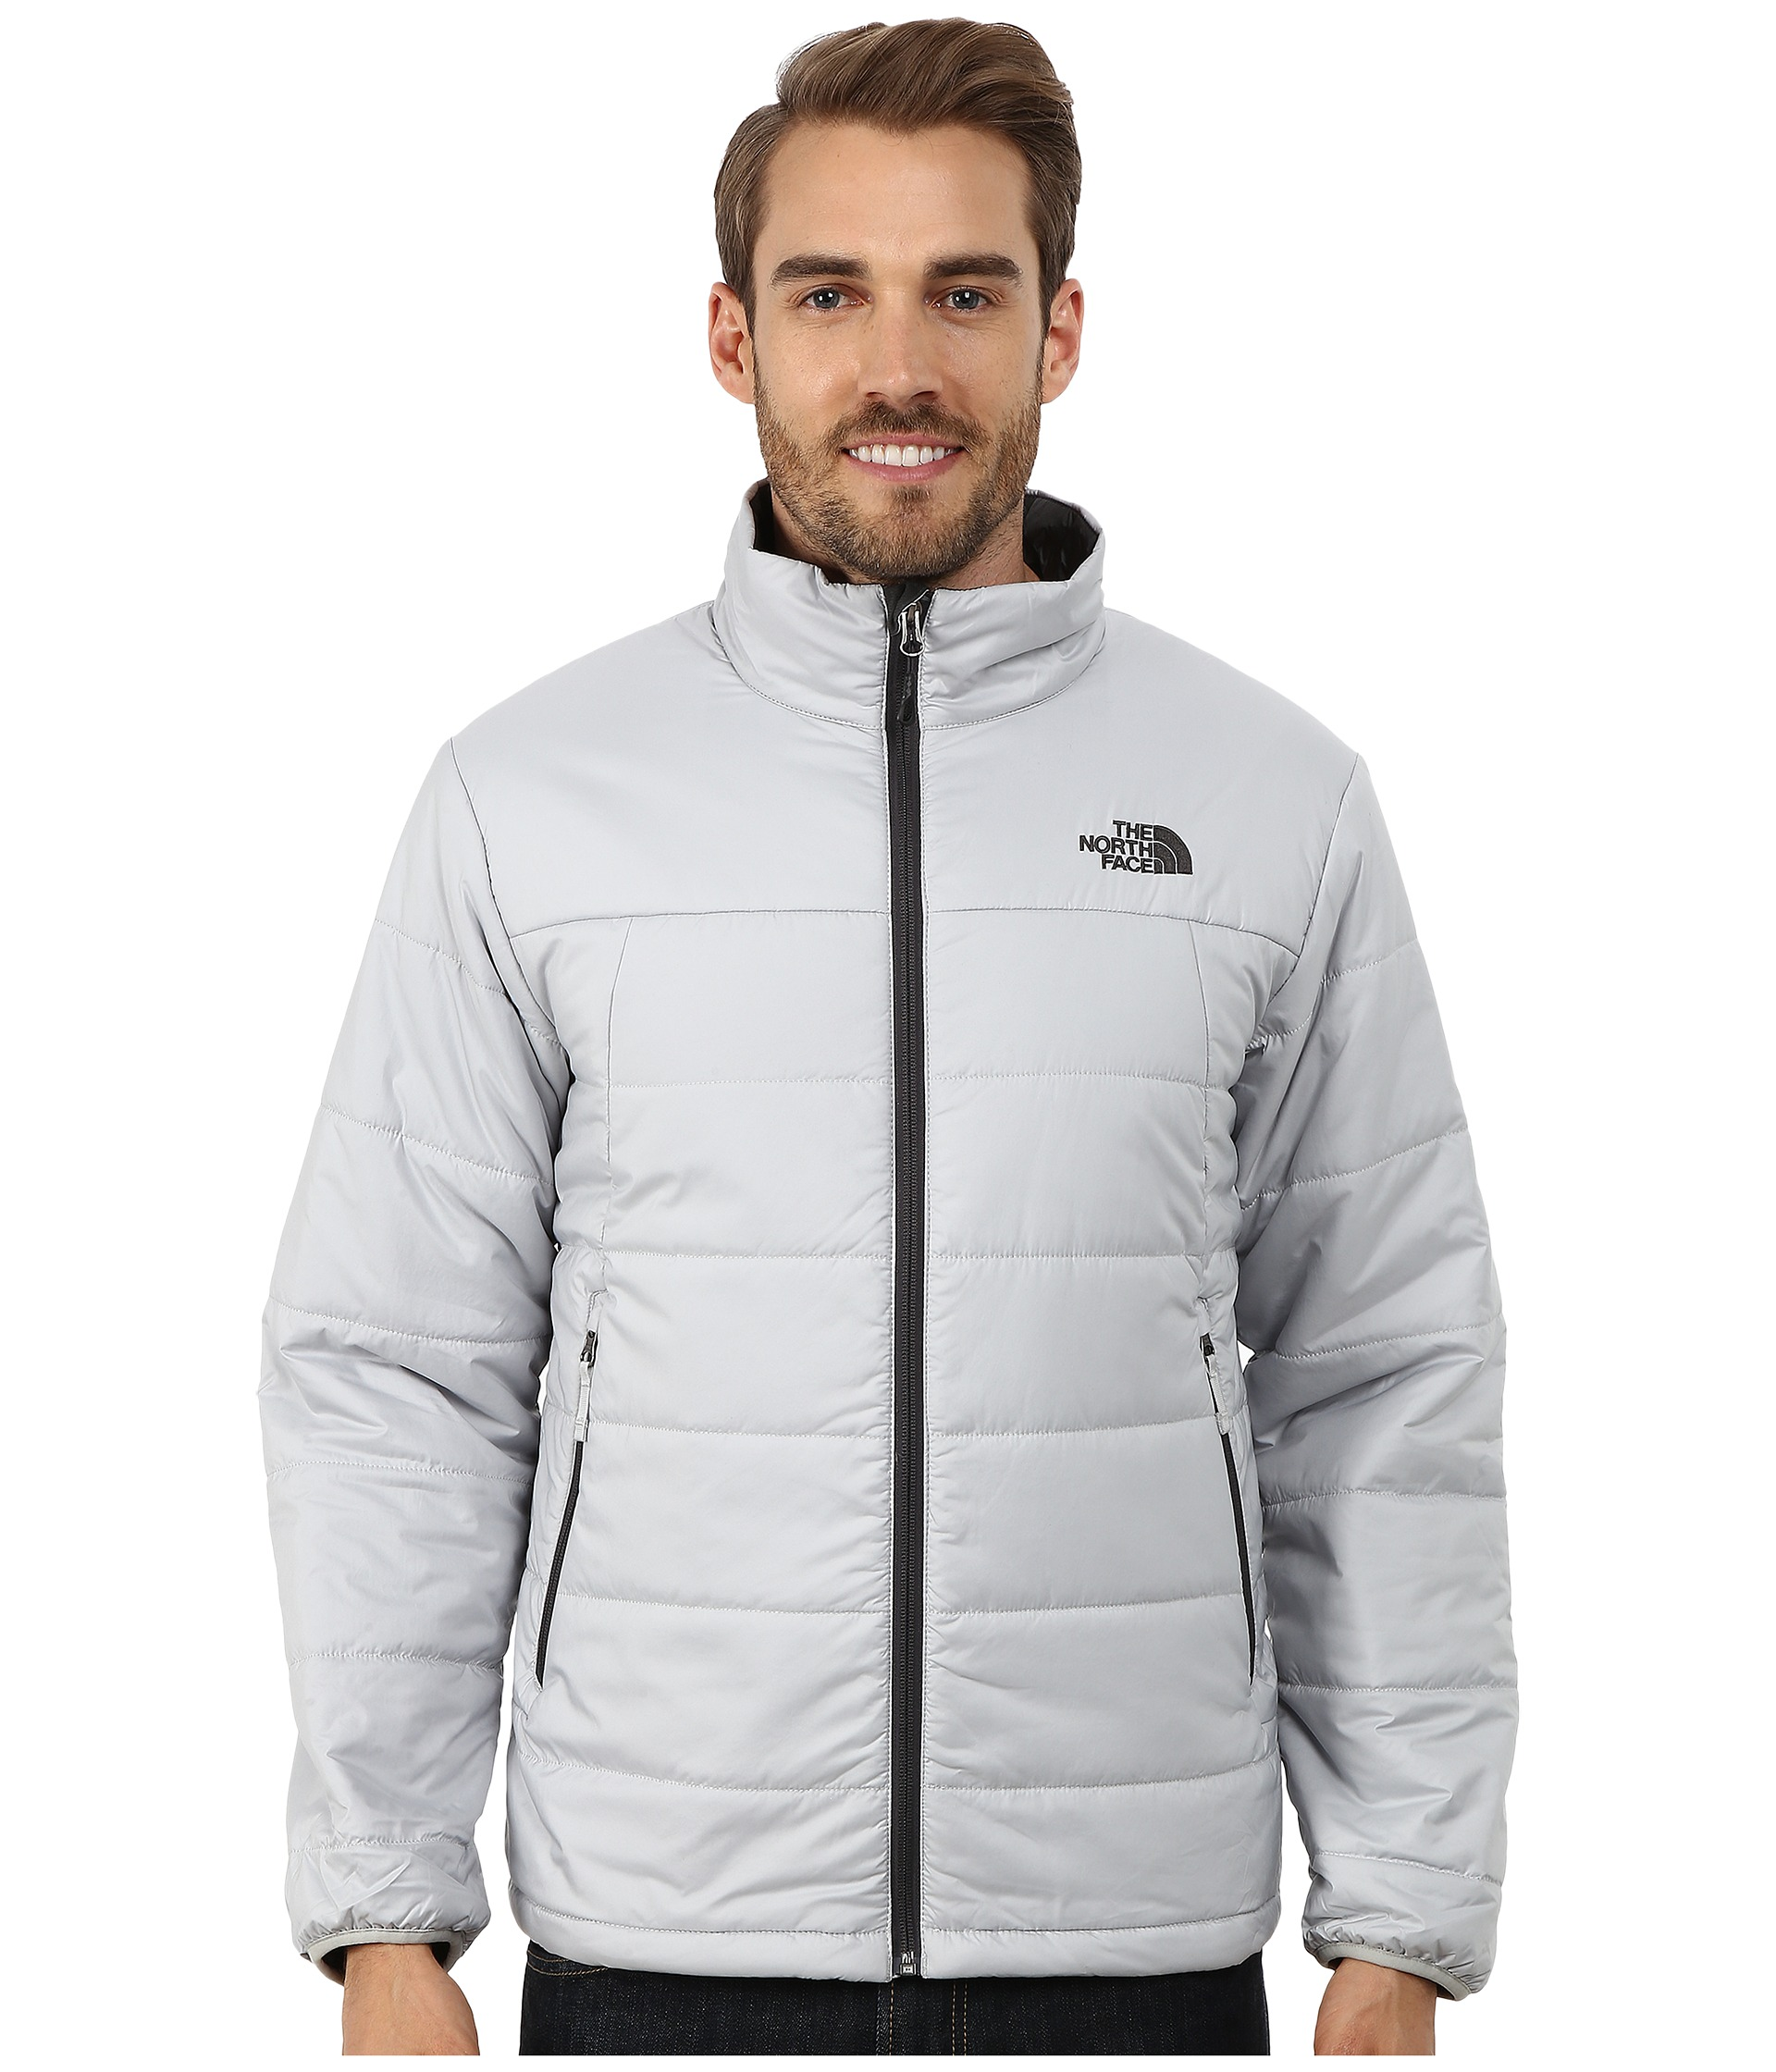 d4de5a38c low price the north face insulated bombay jacket 2700e 35548